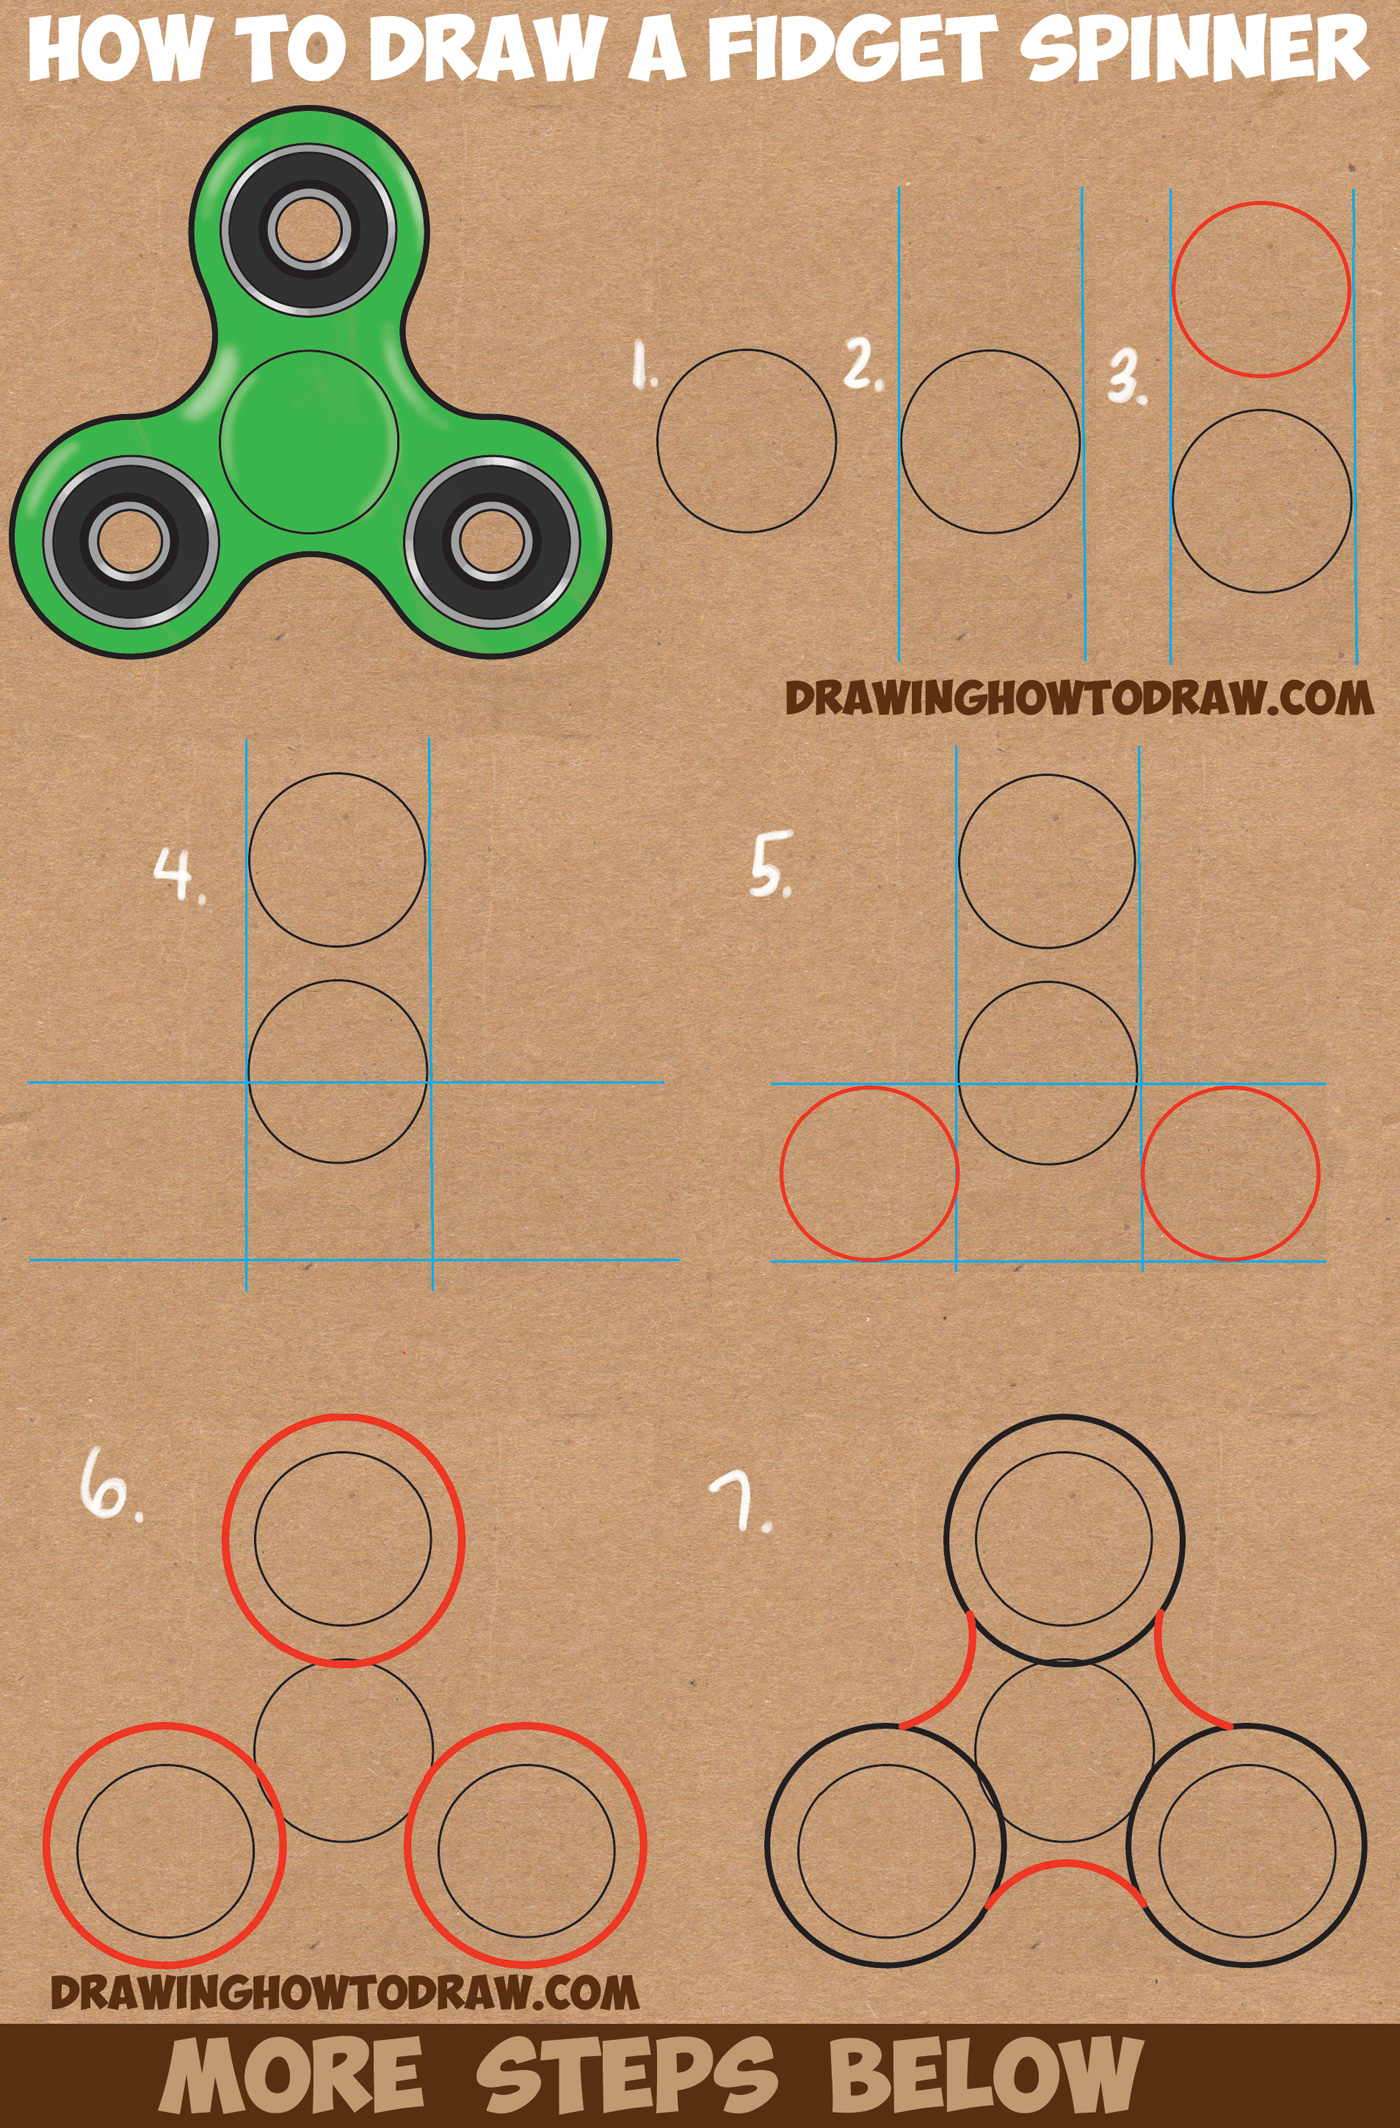 How to Draw a Fidget Spinner Easy Step by Step Drawing Tutorial for Kids and Beginners